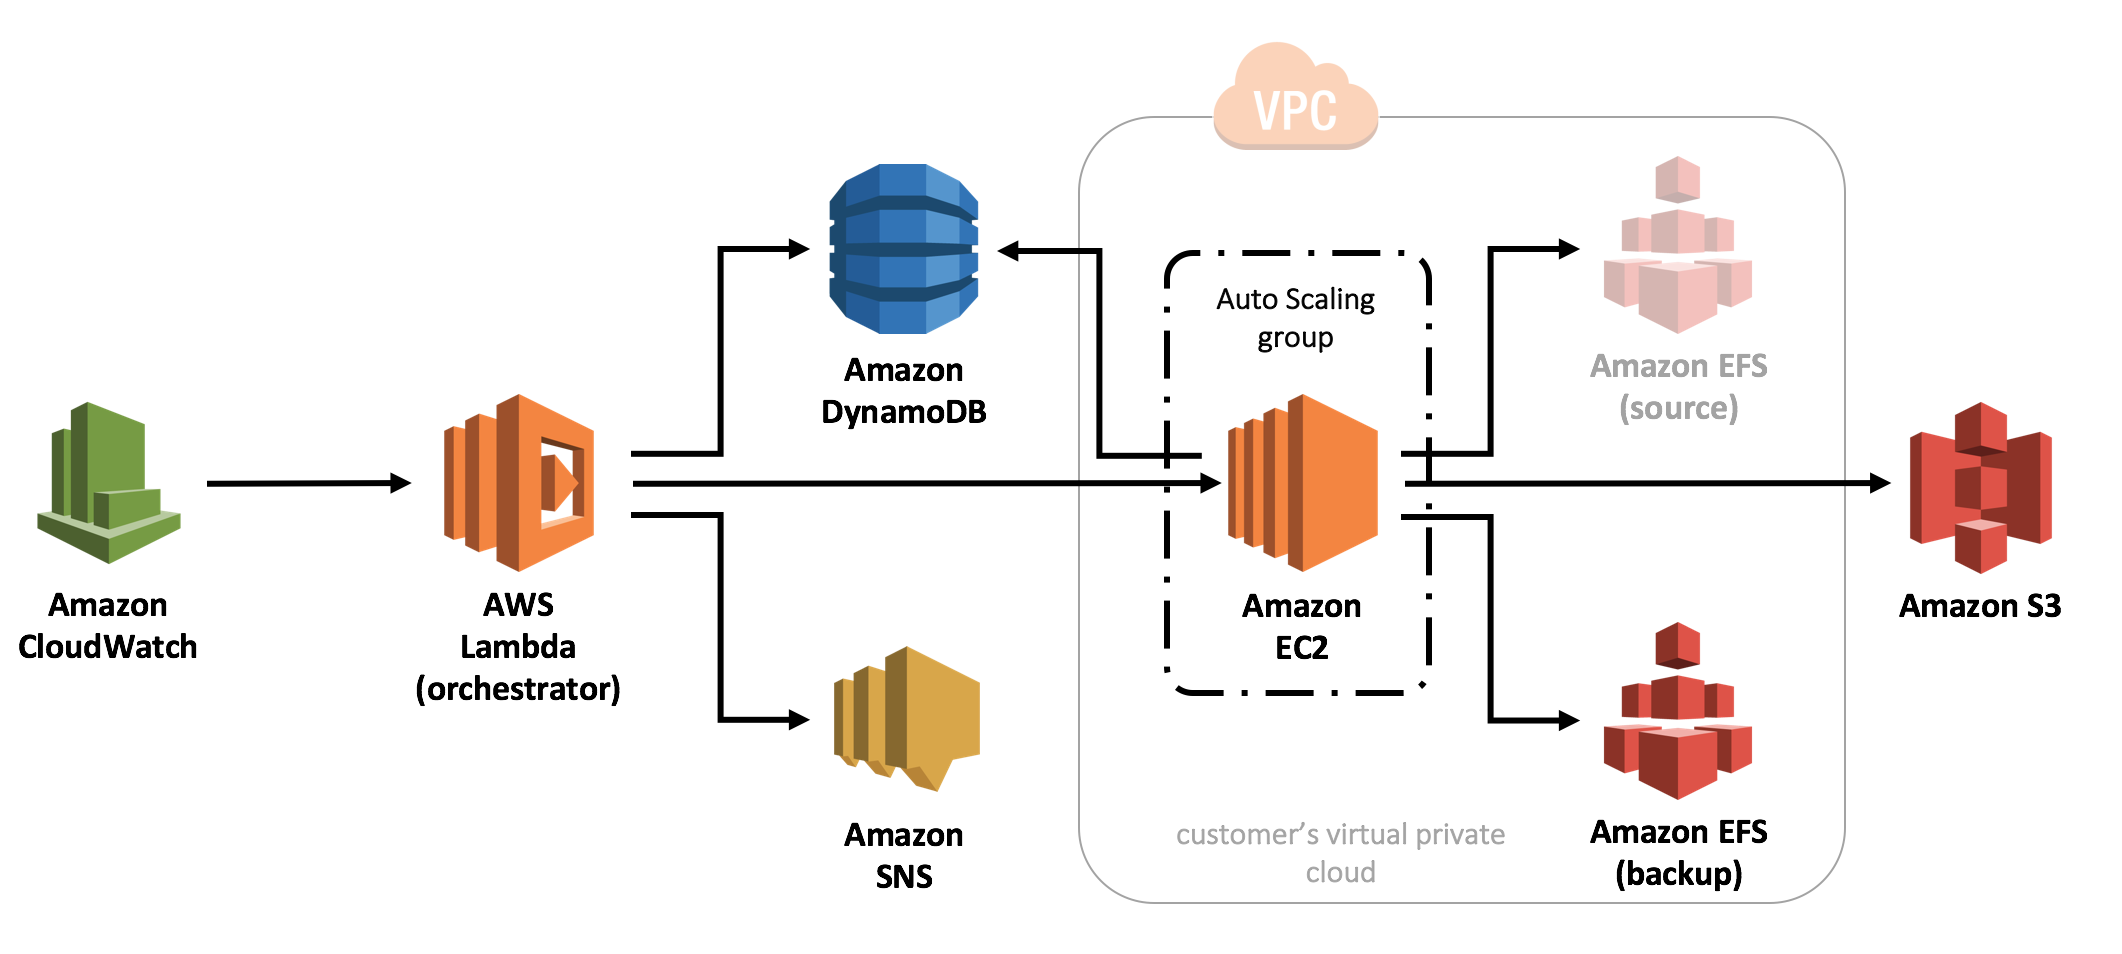 how to use amazon s3 for backup